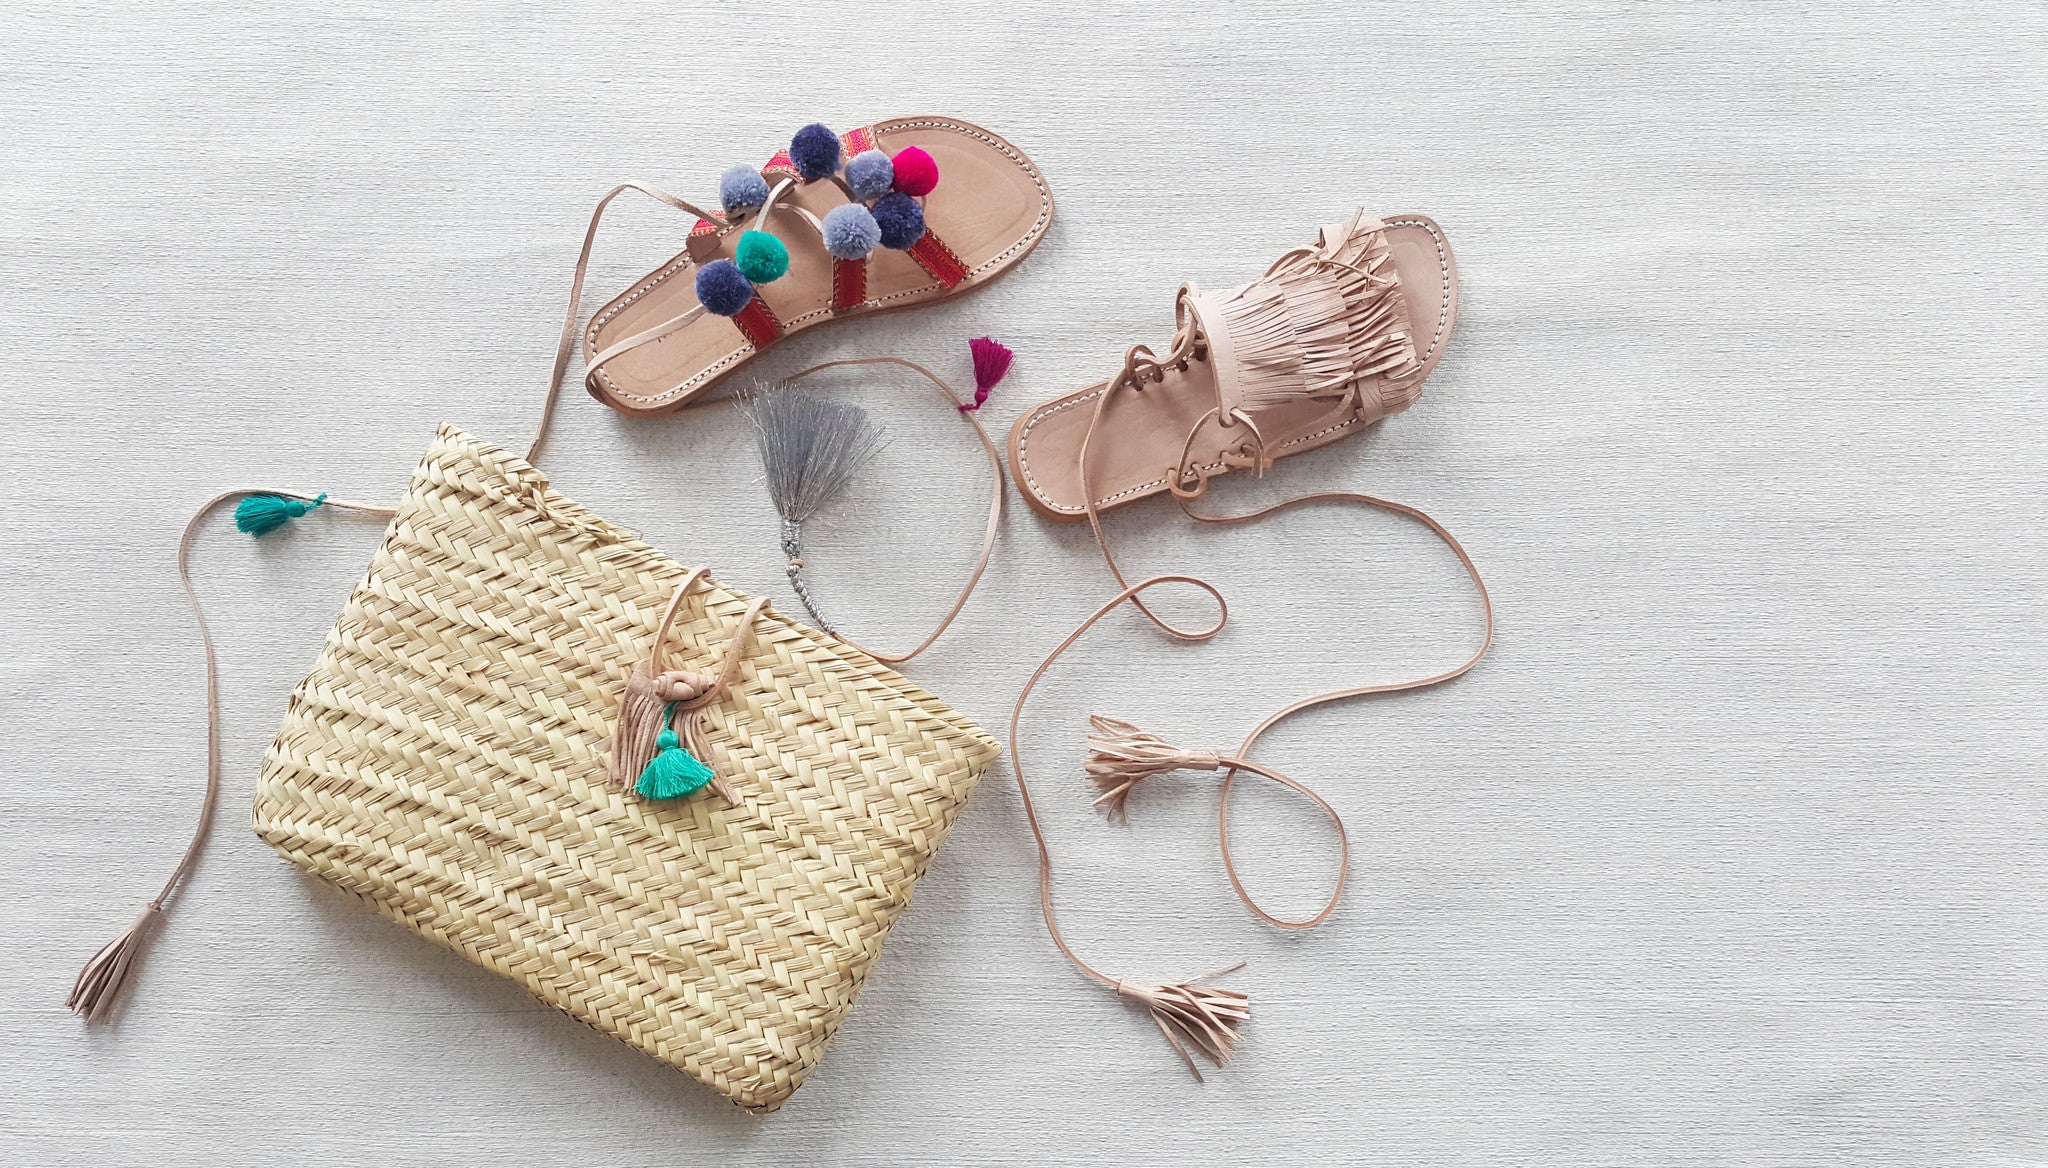 woven pouch clutch for sandals